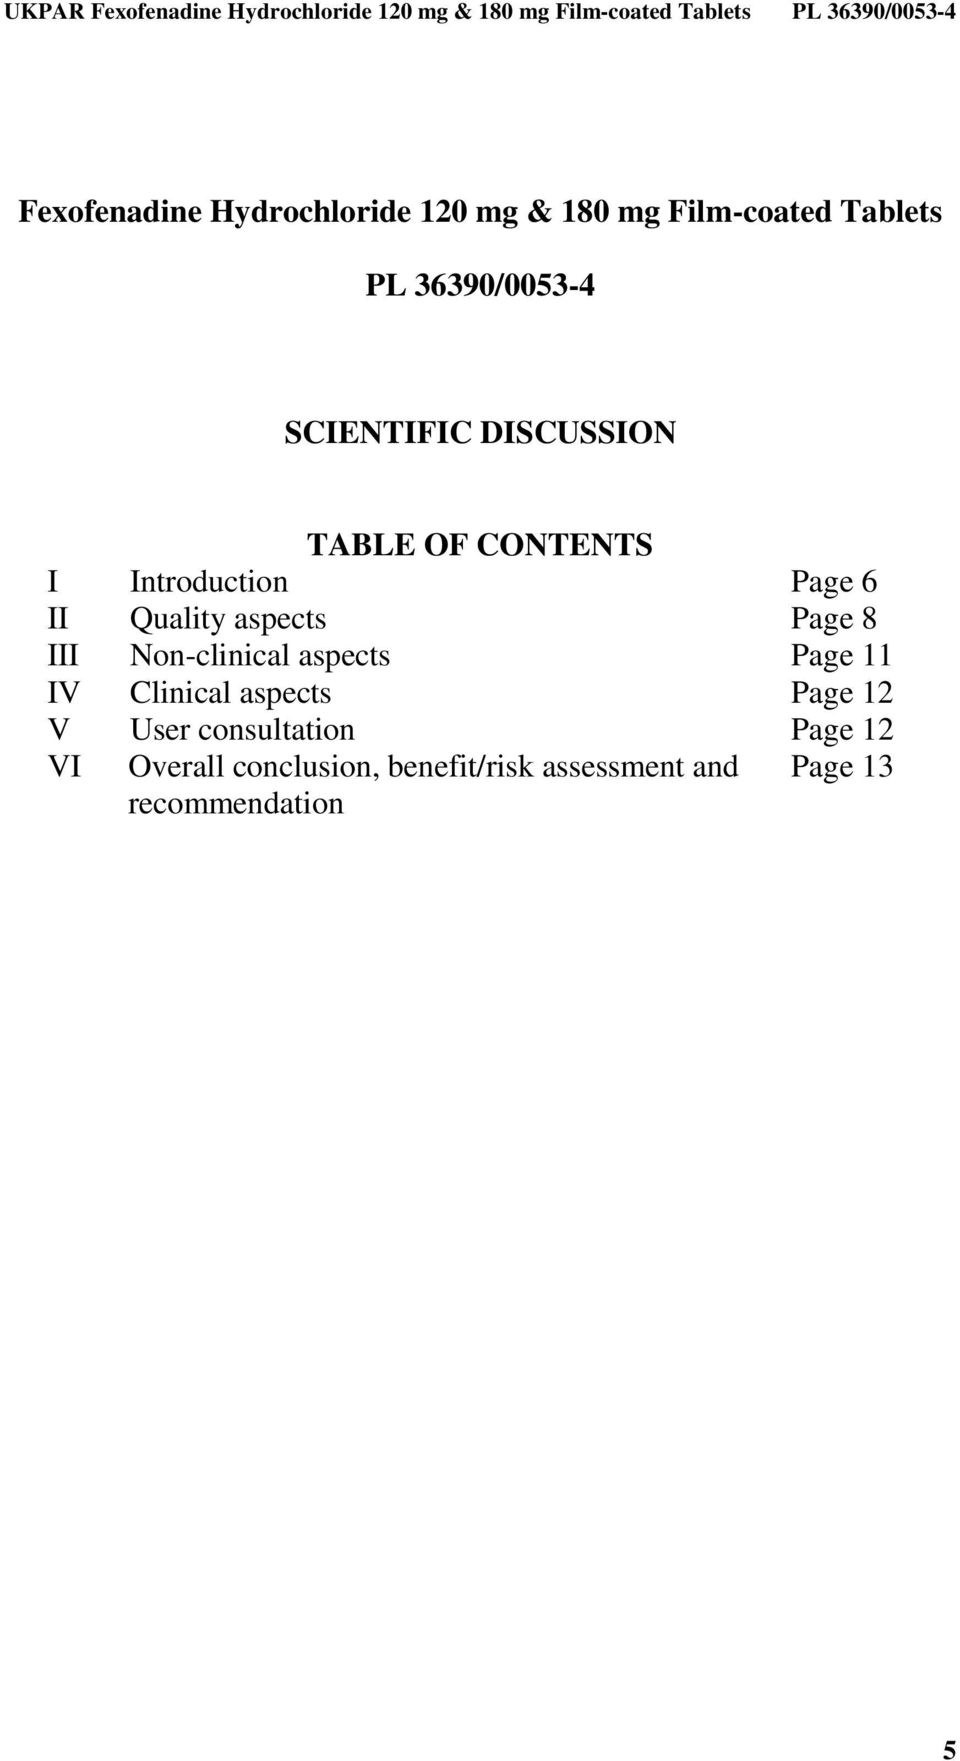 Page 8 III Non-clinical aspects Page 11 IV Clinical aspects Page 12 V User